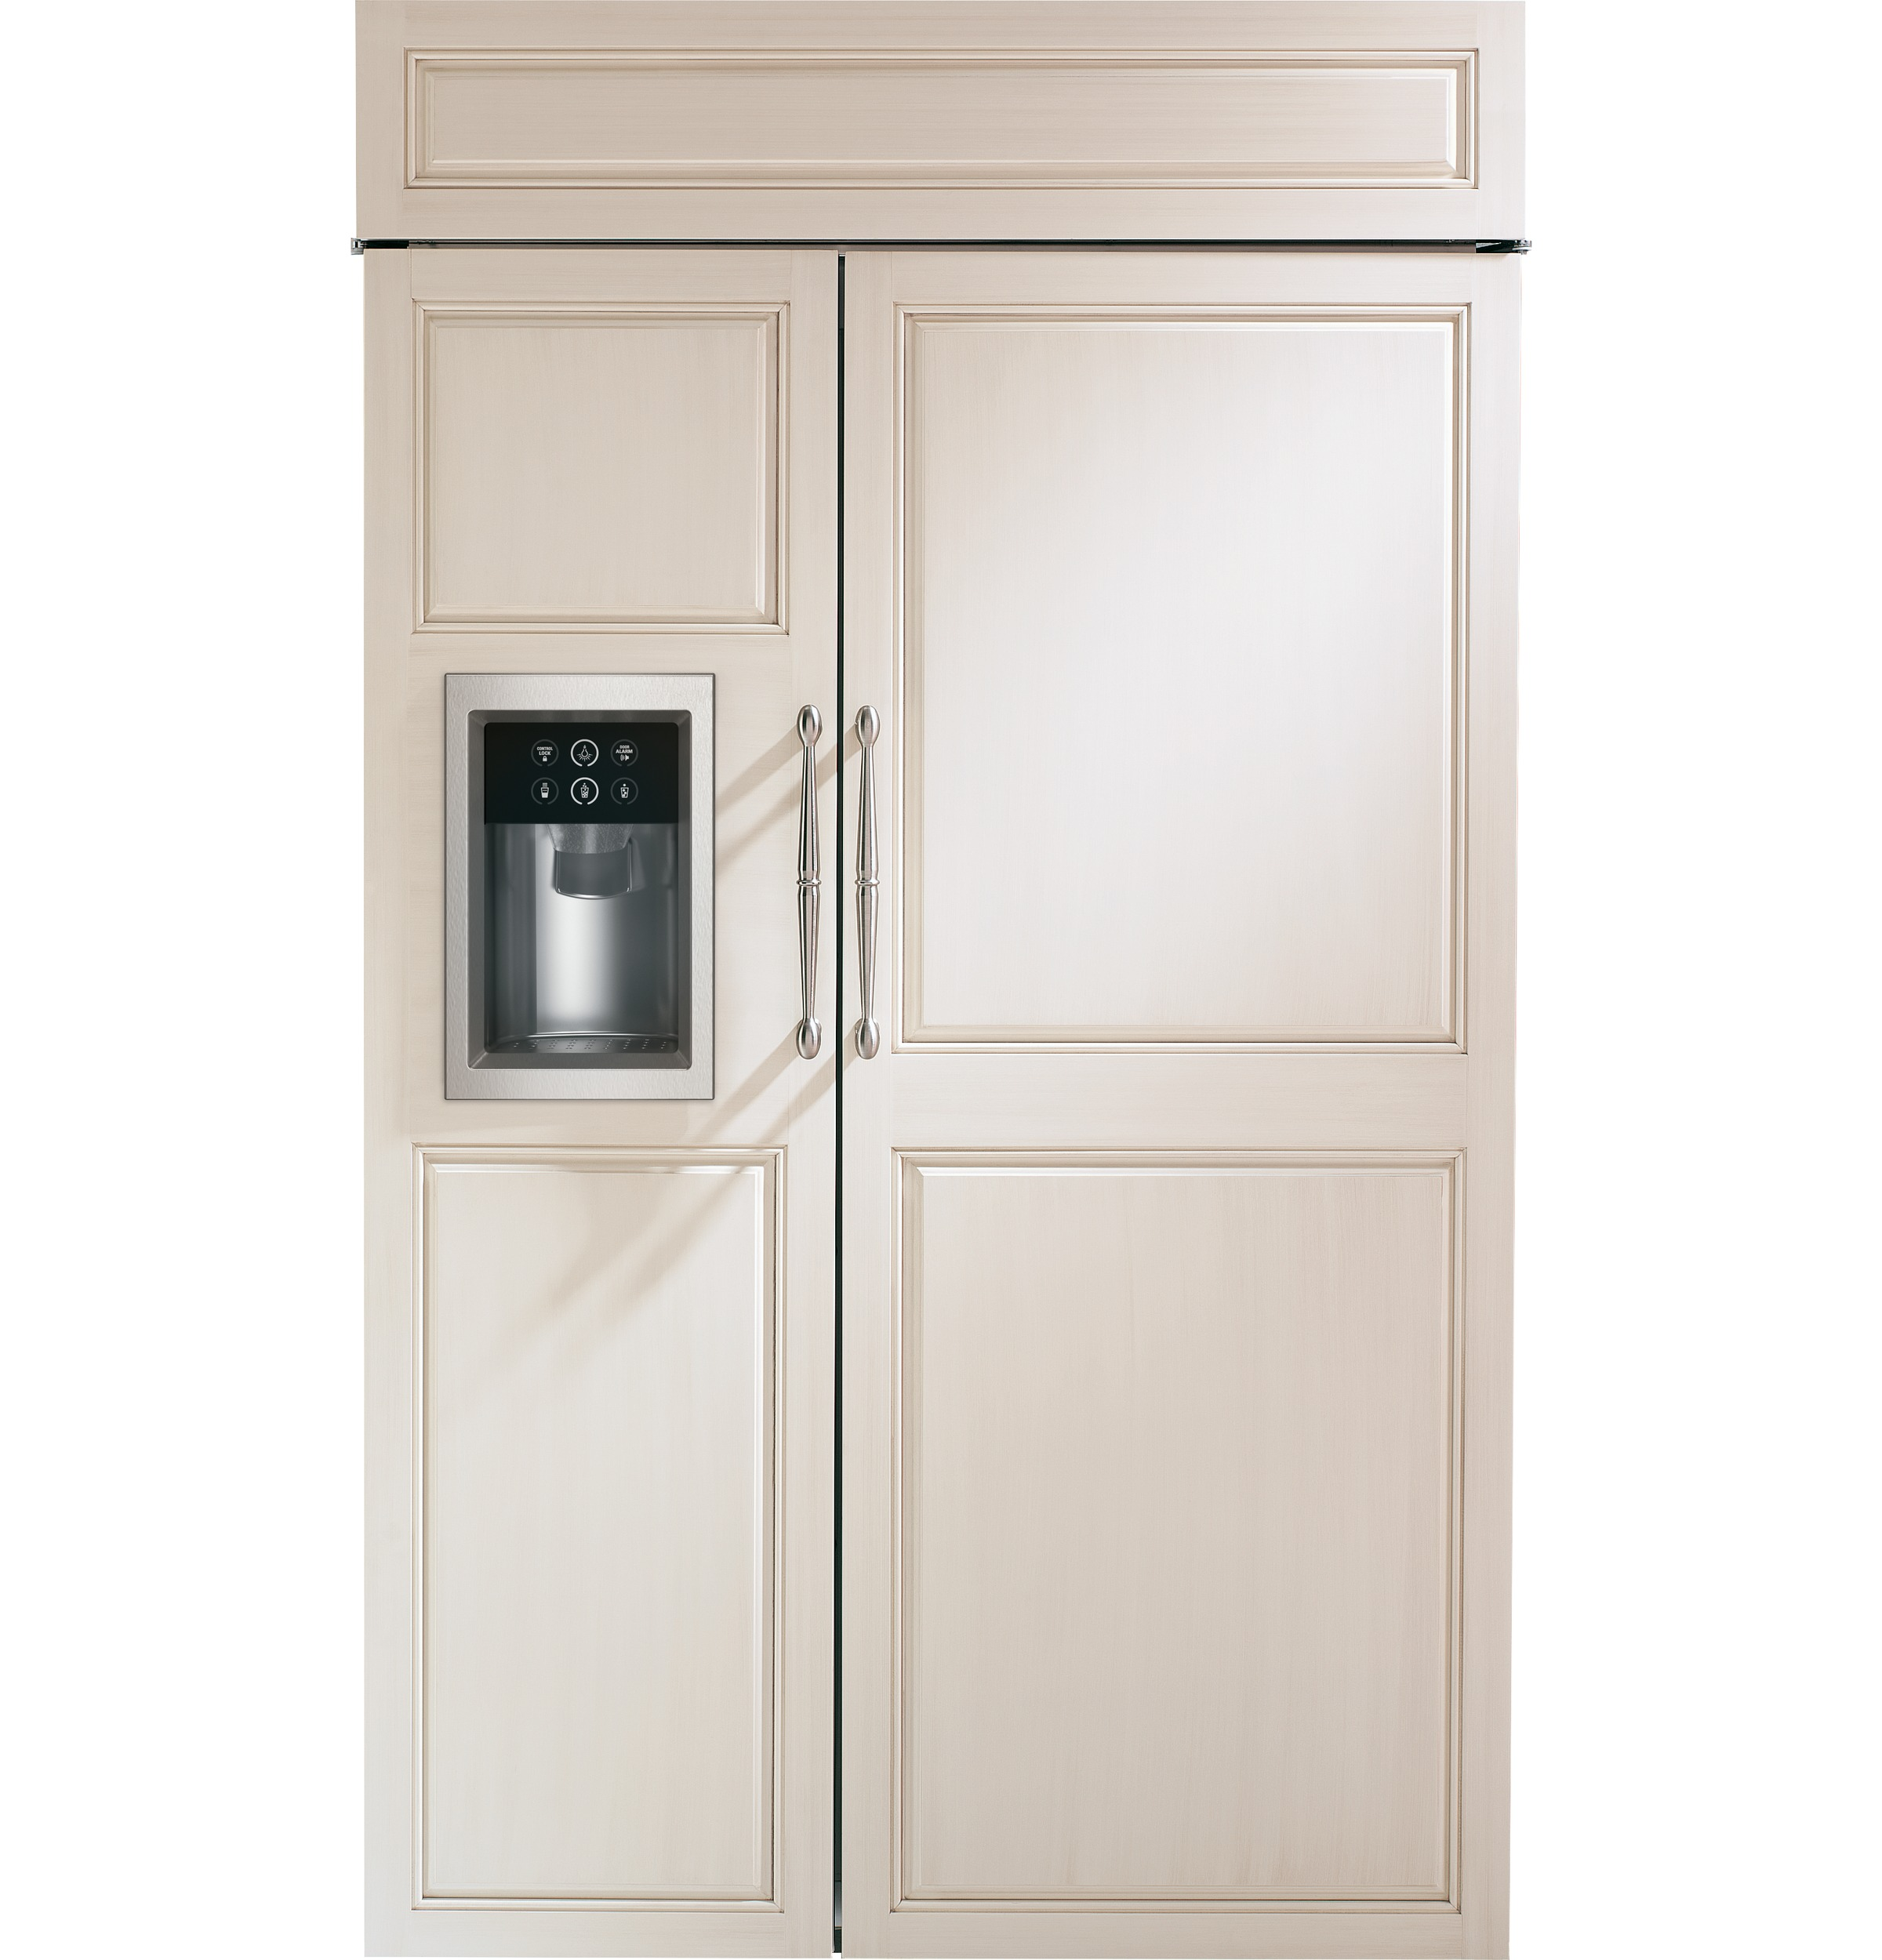 "Monogram Monogram 48"" Smart Built-In Side-by-Side Refrigerator with Dispenser"